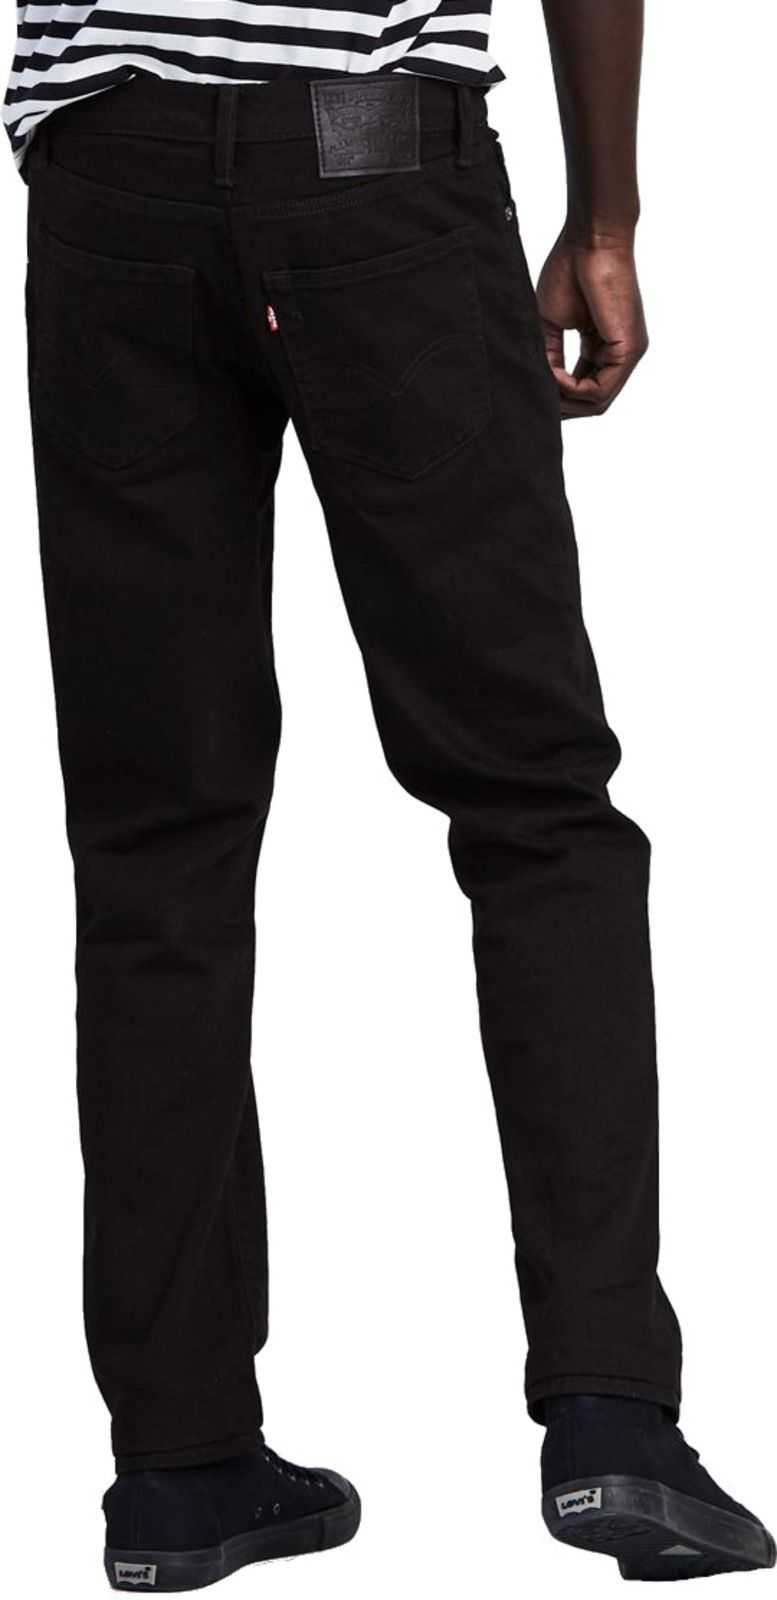 Levi's 511 Slim Fit Denim Jeans Black